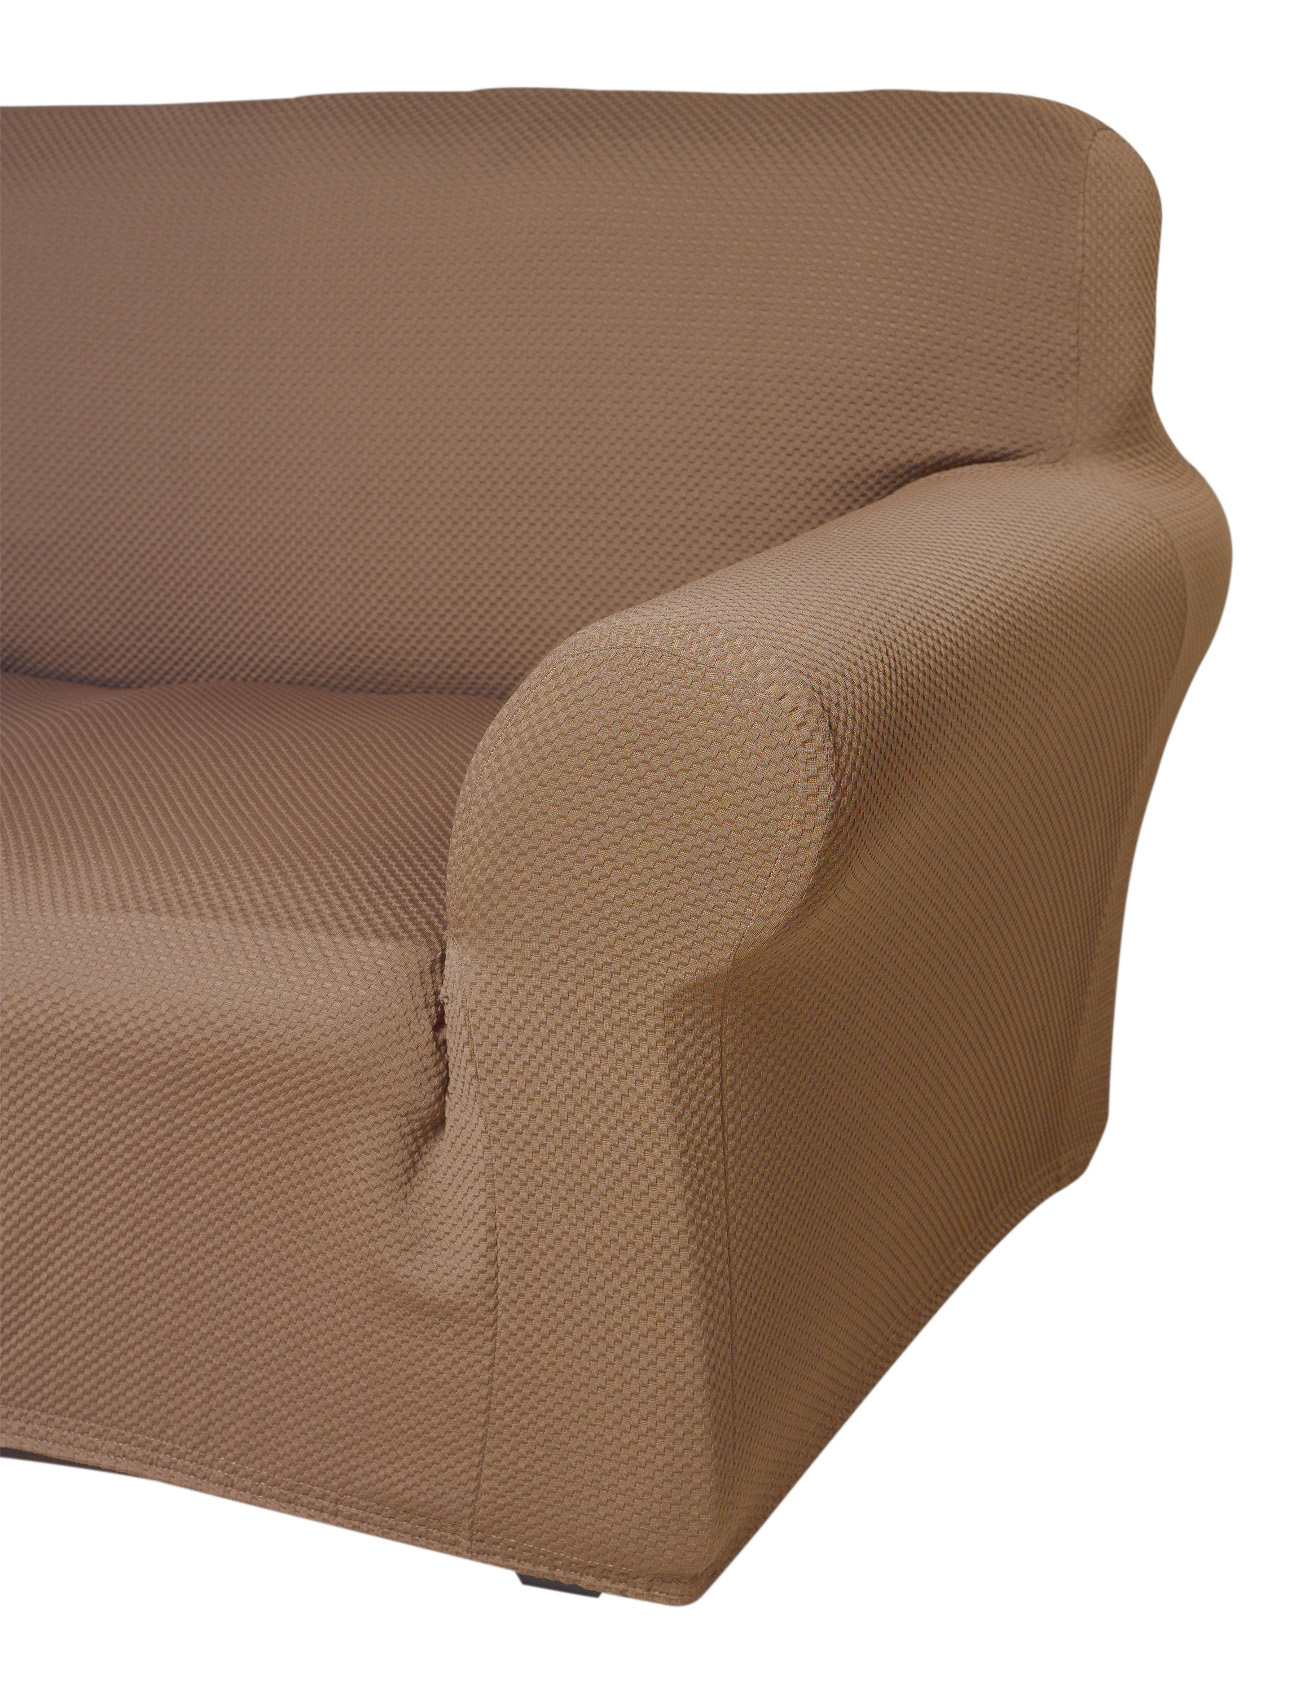 Chair Furniture Protector ashley mills easy stretch furniture protector chair sofa cover 1 2